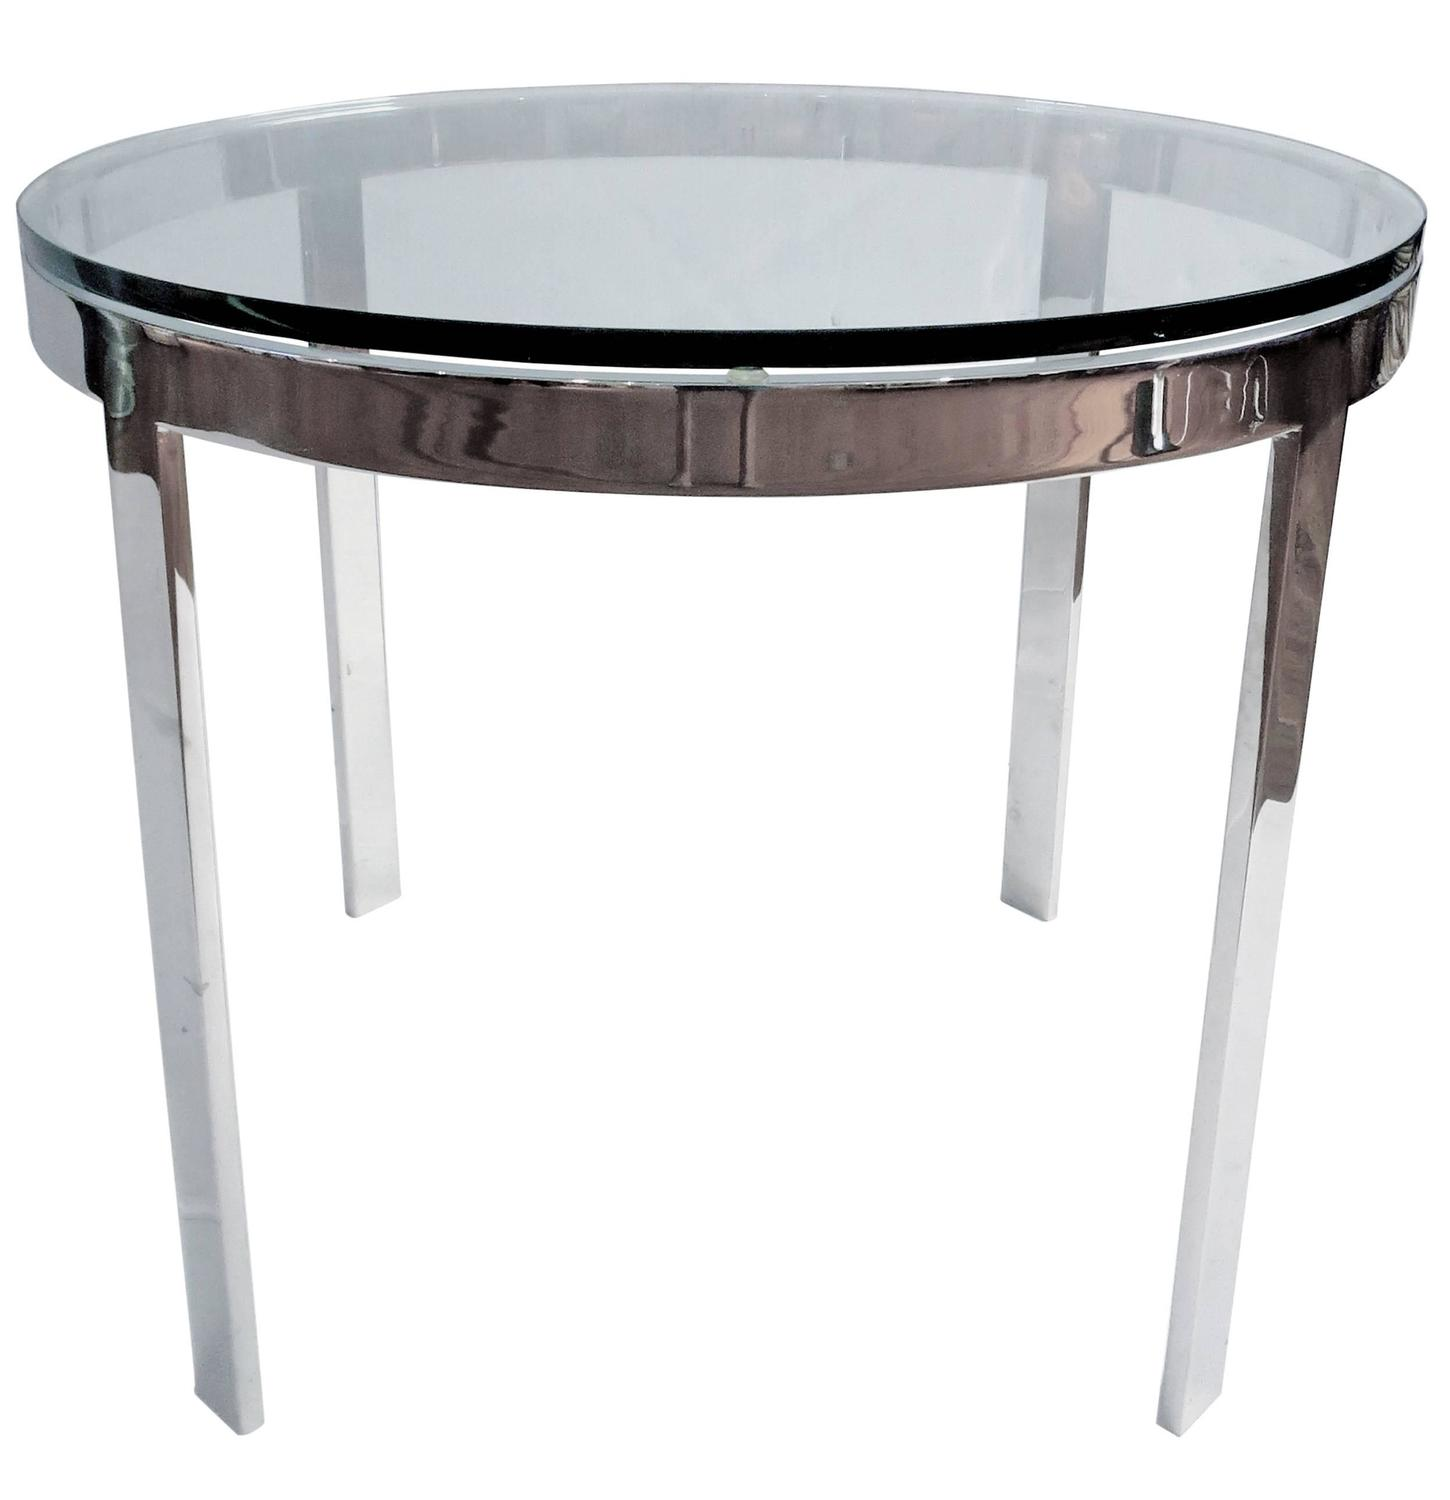 1970s Polished Solid Steel And Glass Cocktail Table By Nicos Zographos For Sale At 1stdibs